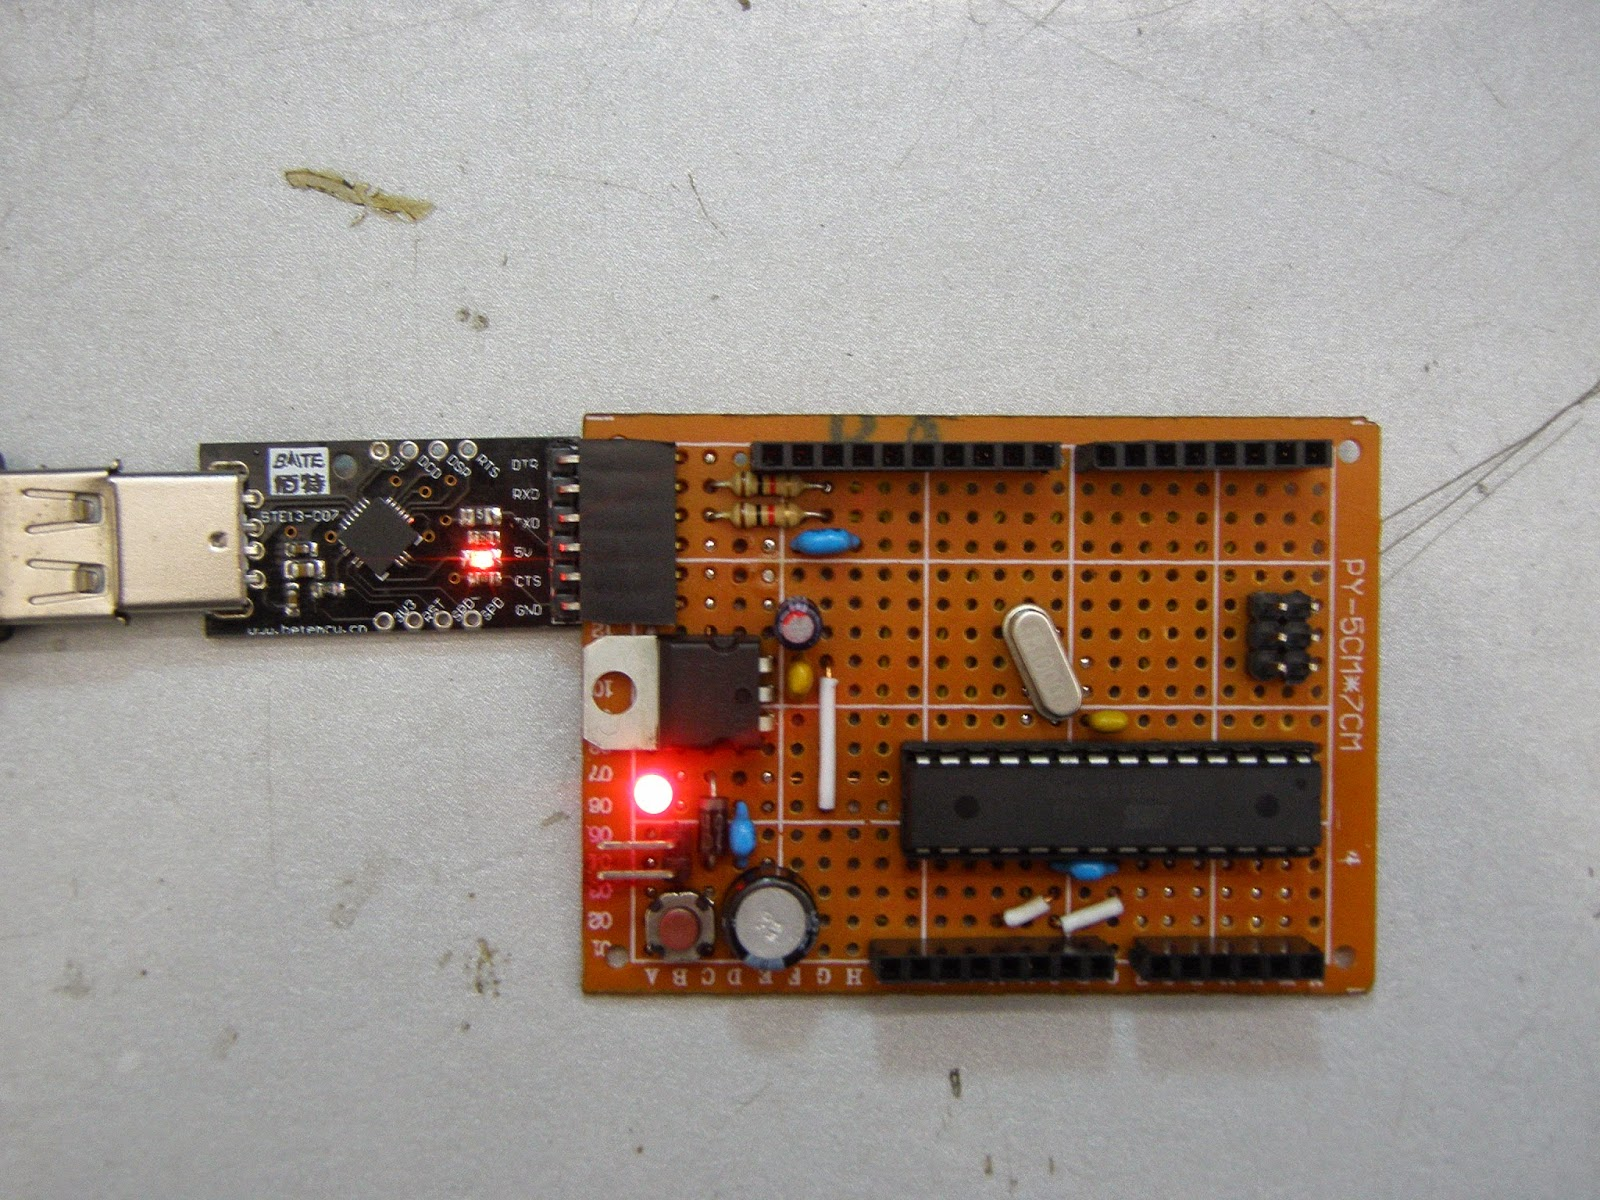 I bek car electrician arduino home made on veroboard by